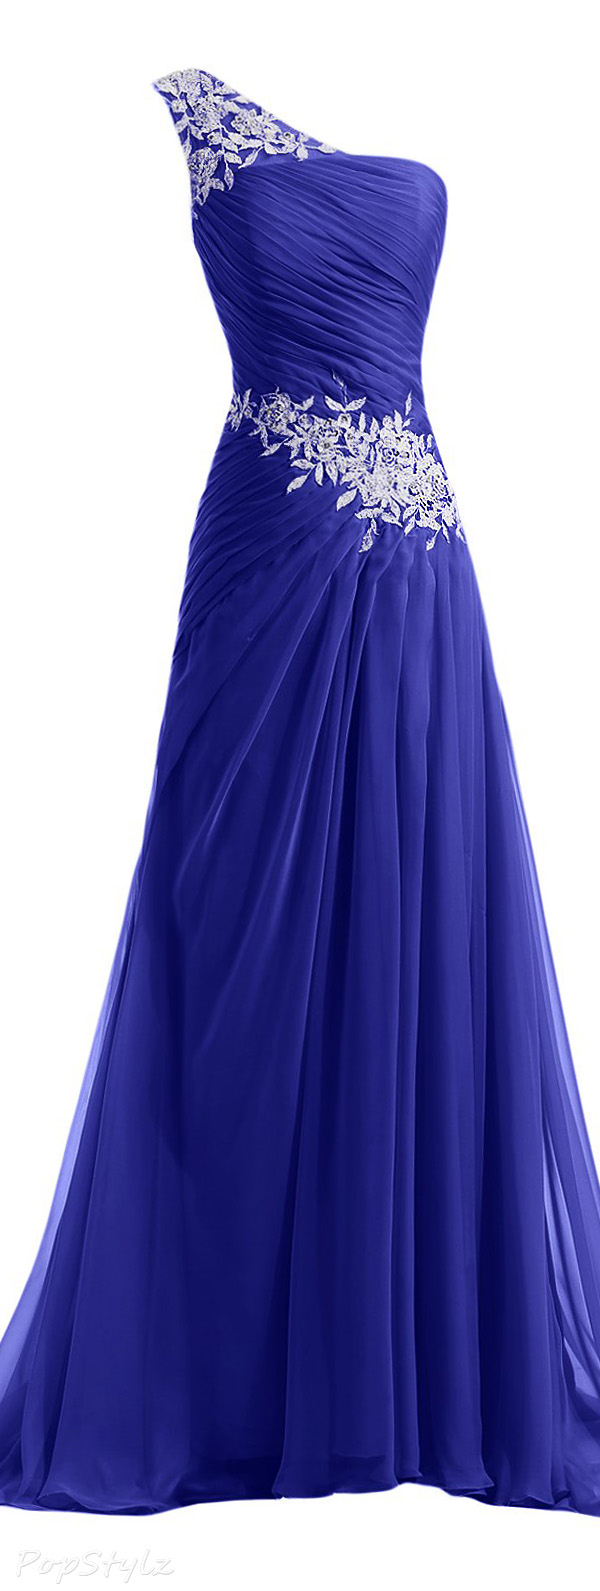 Sunvary Chiffon & Applique Formal Evening Gown